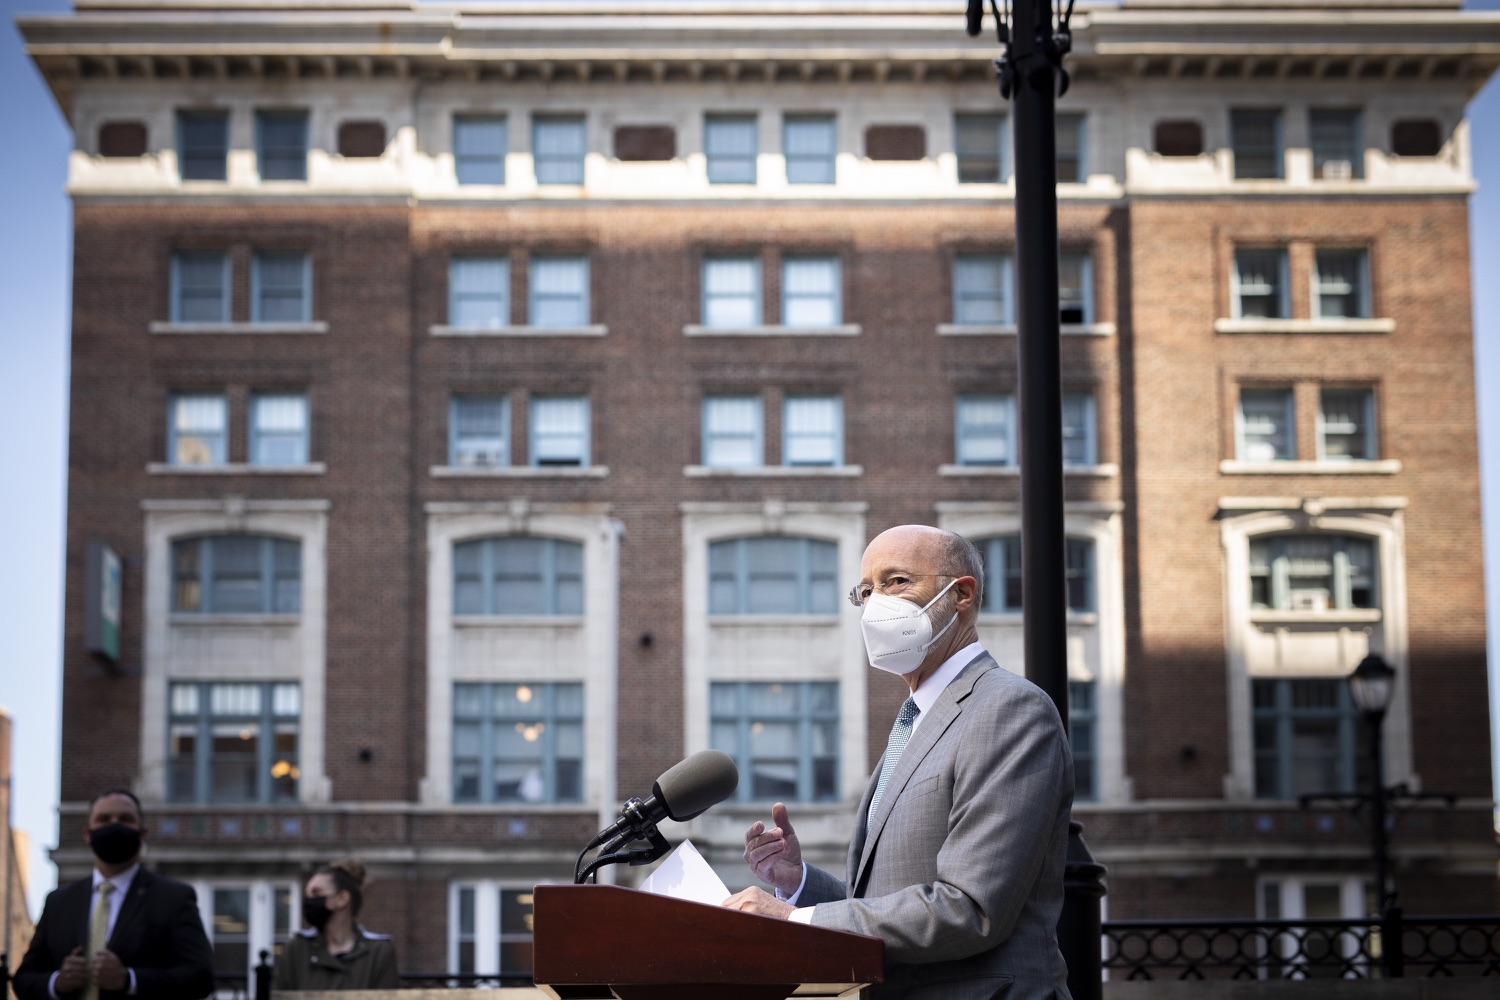 """<a href=""""https://filesource.wostreaming.net/commonwealthofpa/photo/18688_gov_vaccines_dz_001.jpg"""" target=""""_blank"""">⇣Download Photo<br></a>Pennsylvania Governor Tom Wolf speaking with the press.  As Pennsylvania continues its accelerated COVID-19 vaccination plan, Pennsylvanians who are not able to leave their homes must be reached, and various state agencies and community groups are helping. Governor Tom Wolf visited Reading to talk about how the state and its partners are using various means to reach people not able to leave home to be vaccinated against COVID-19.  APRIL 26, 2021 - READING, PA"""